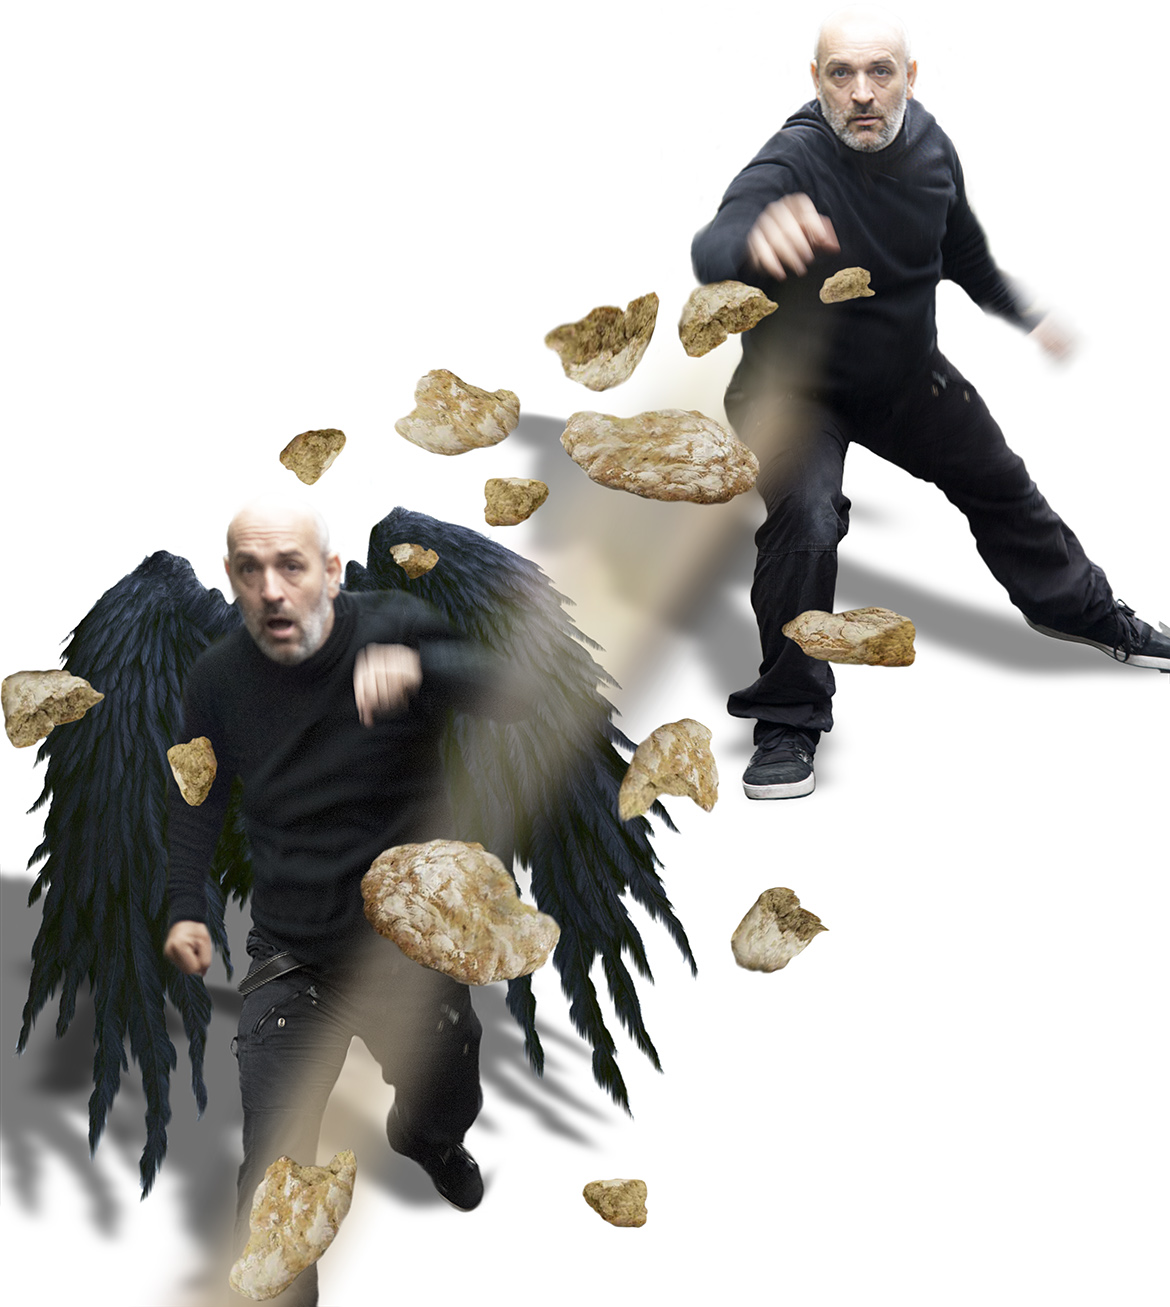 """THE WAR AGAINST THE EVIL"" - THE BREADS ATTACK"